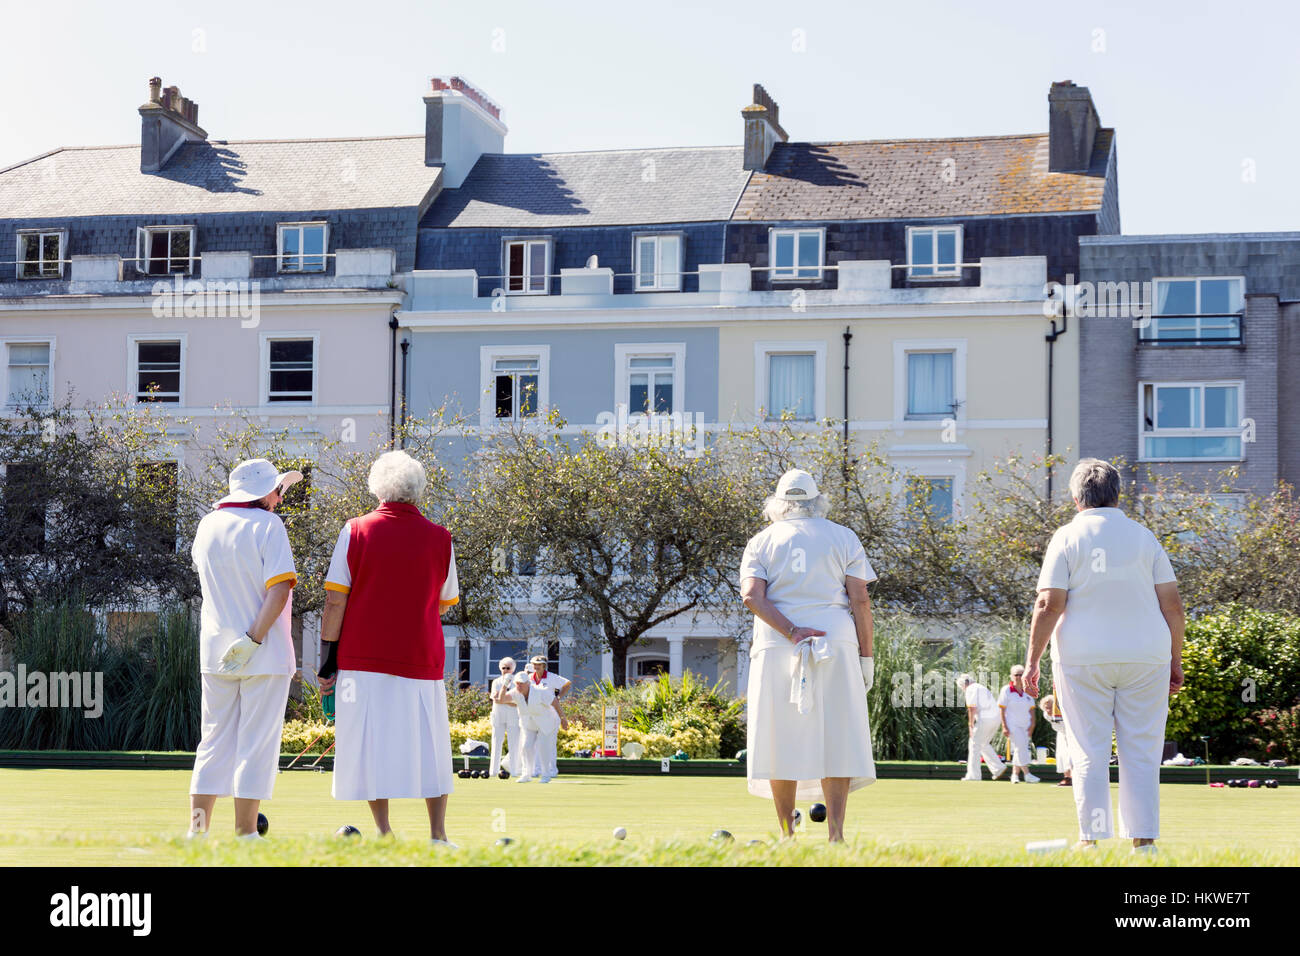 Women playing bowls at The Hoe Public Bowling Club, Plymouth Hoe, Plymouth, Devon, England, United Kingdom - Stock Image